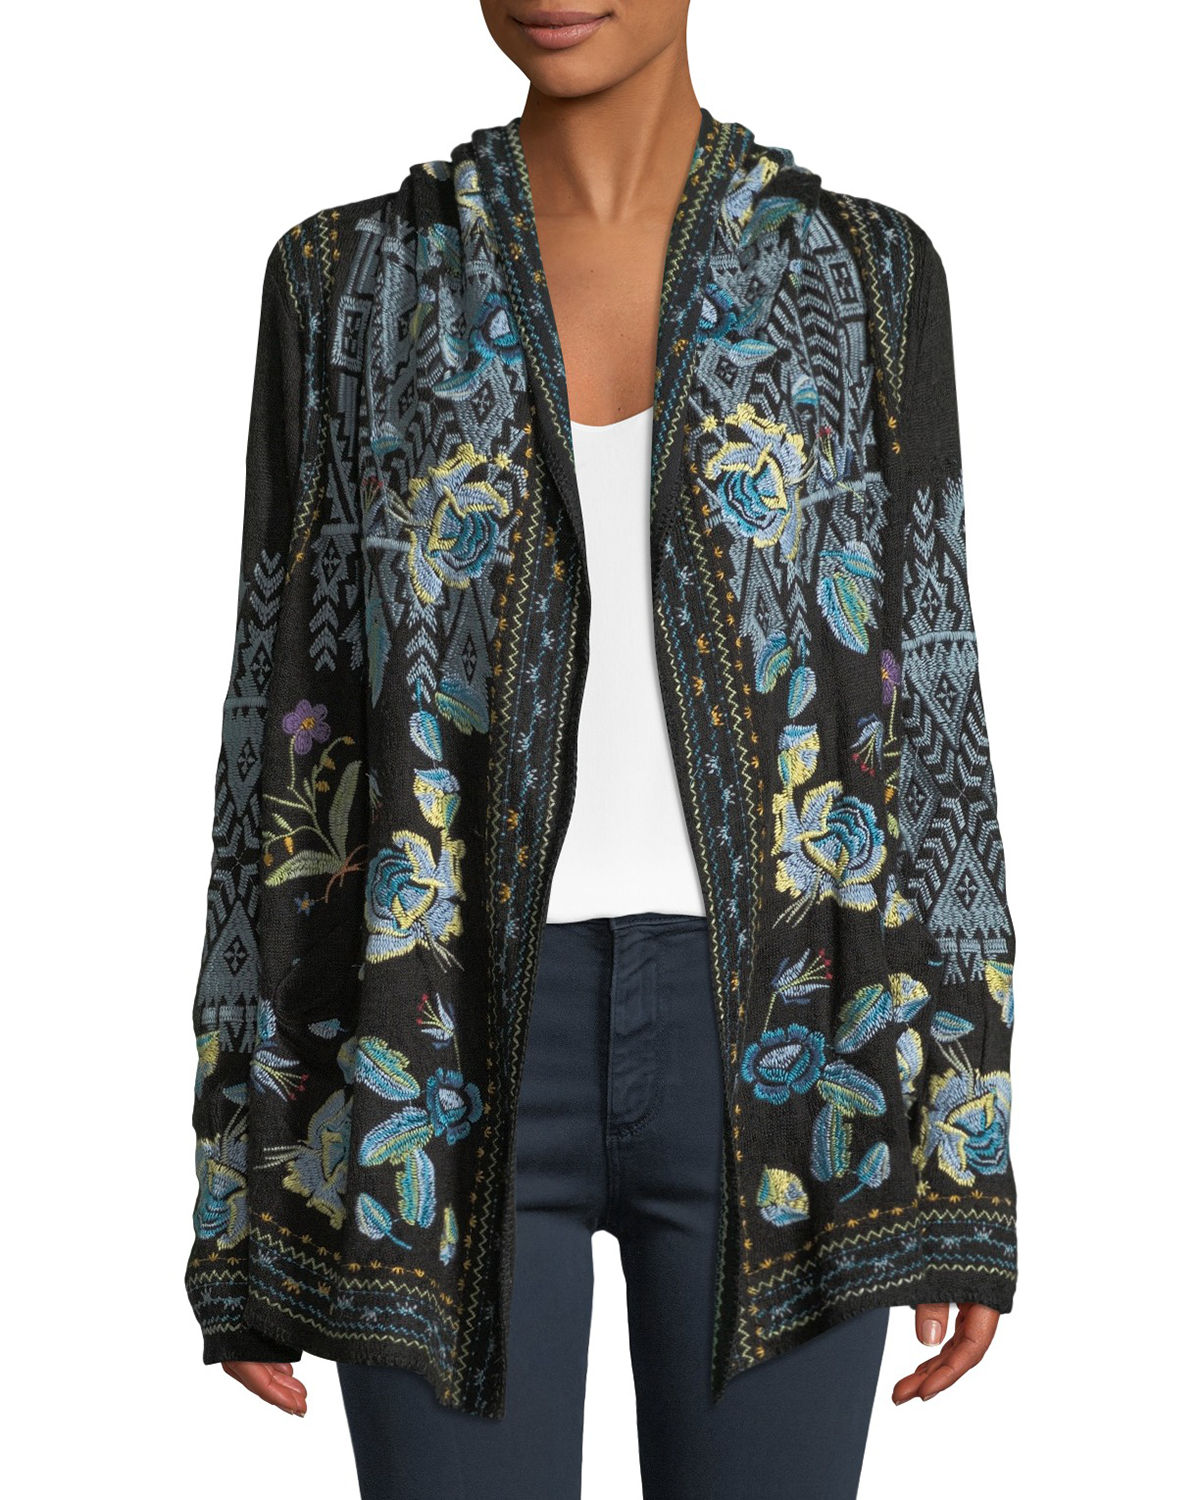 Beiro Hooded Floral-Embroidered Cardigan